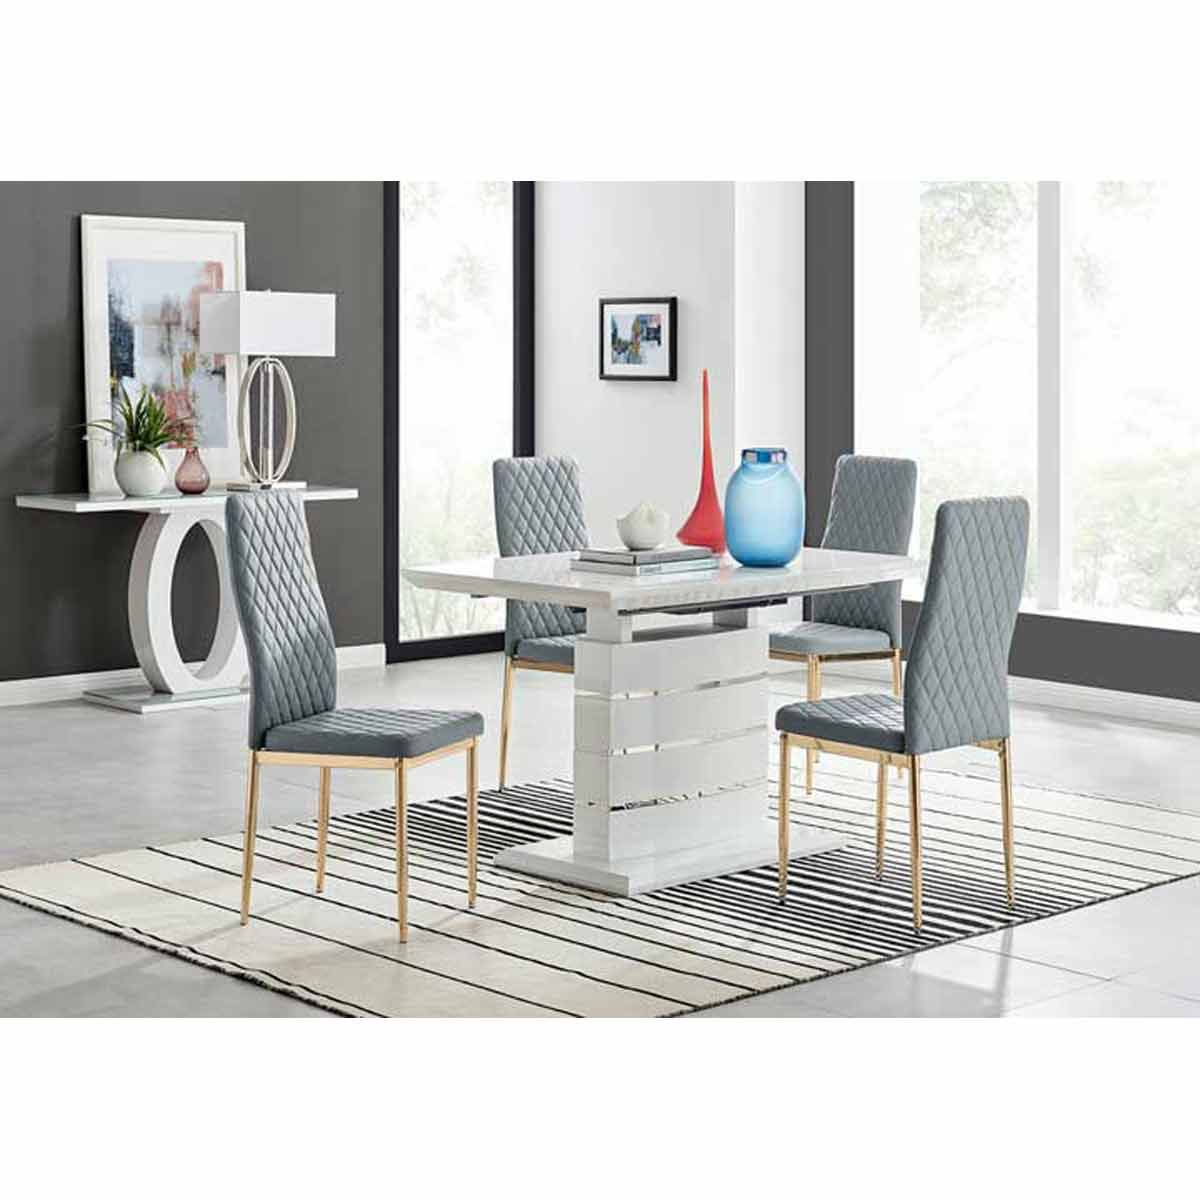 Furniture Box Renato 120cm High Gloss Extending Dining Table and 4 Grey Gold Leg Milan Chairs